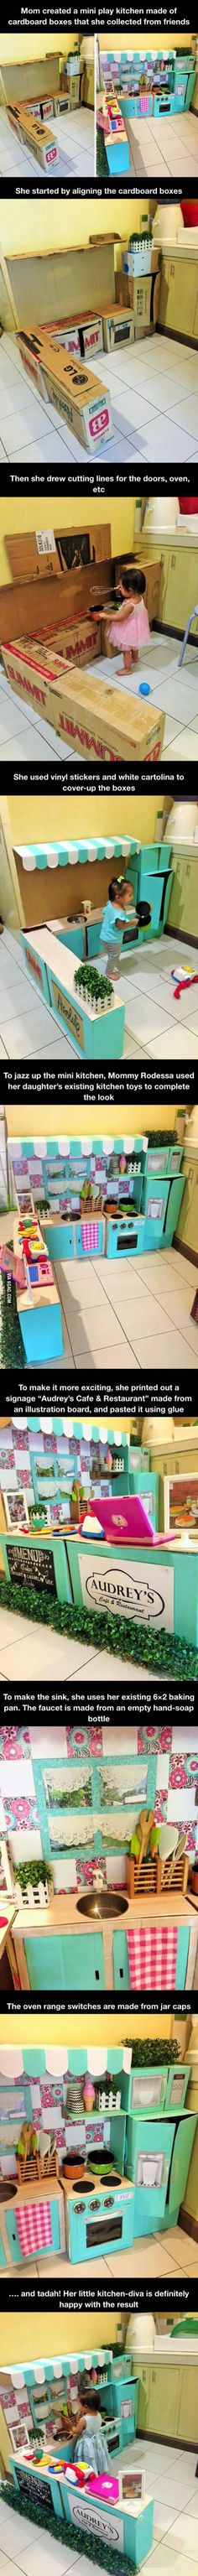 This Mom Created A Mini Play Kitchen Made Of Cardboard Boxes For Her Toddler is part of Cardboard crafts Kitchen - More memes, funny videos and pics on Cardboard Kitchen, Cardboard Box Crafts, Cardboard Playhouse, Cardboard Toys, Cardboard Furniture, Projects For Kids, Diy For Kids, Diy Karton, Mini Kitchen